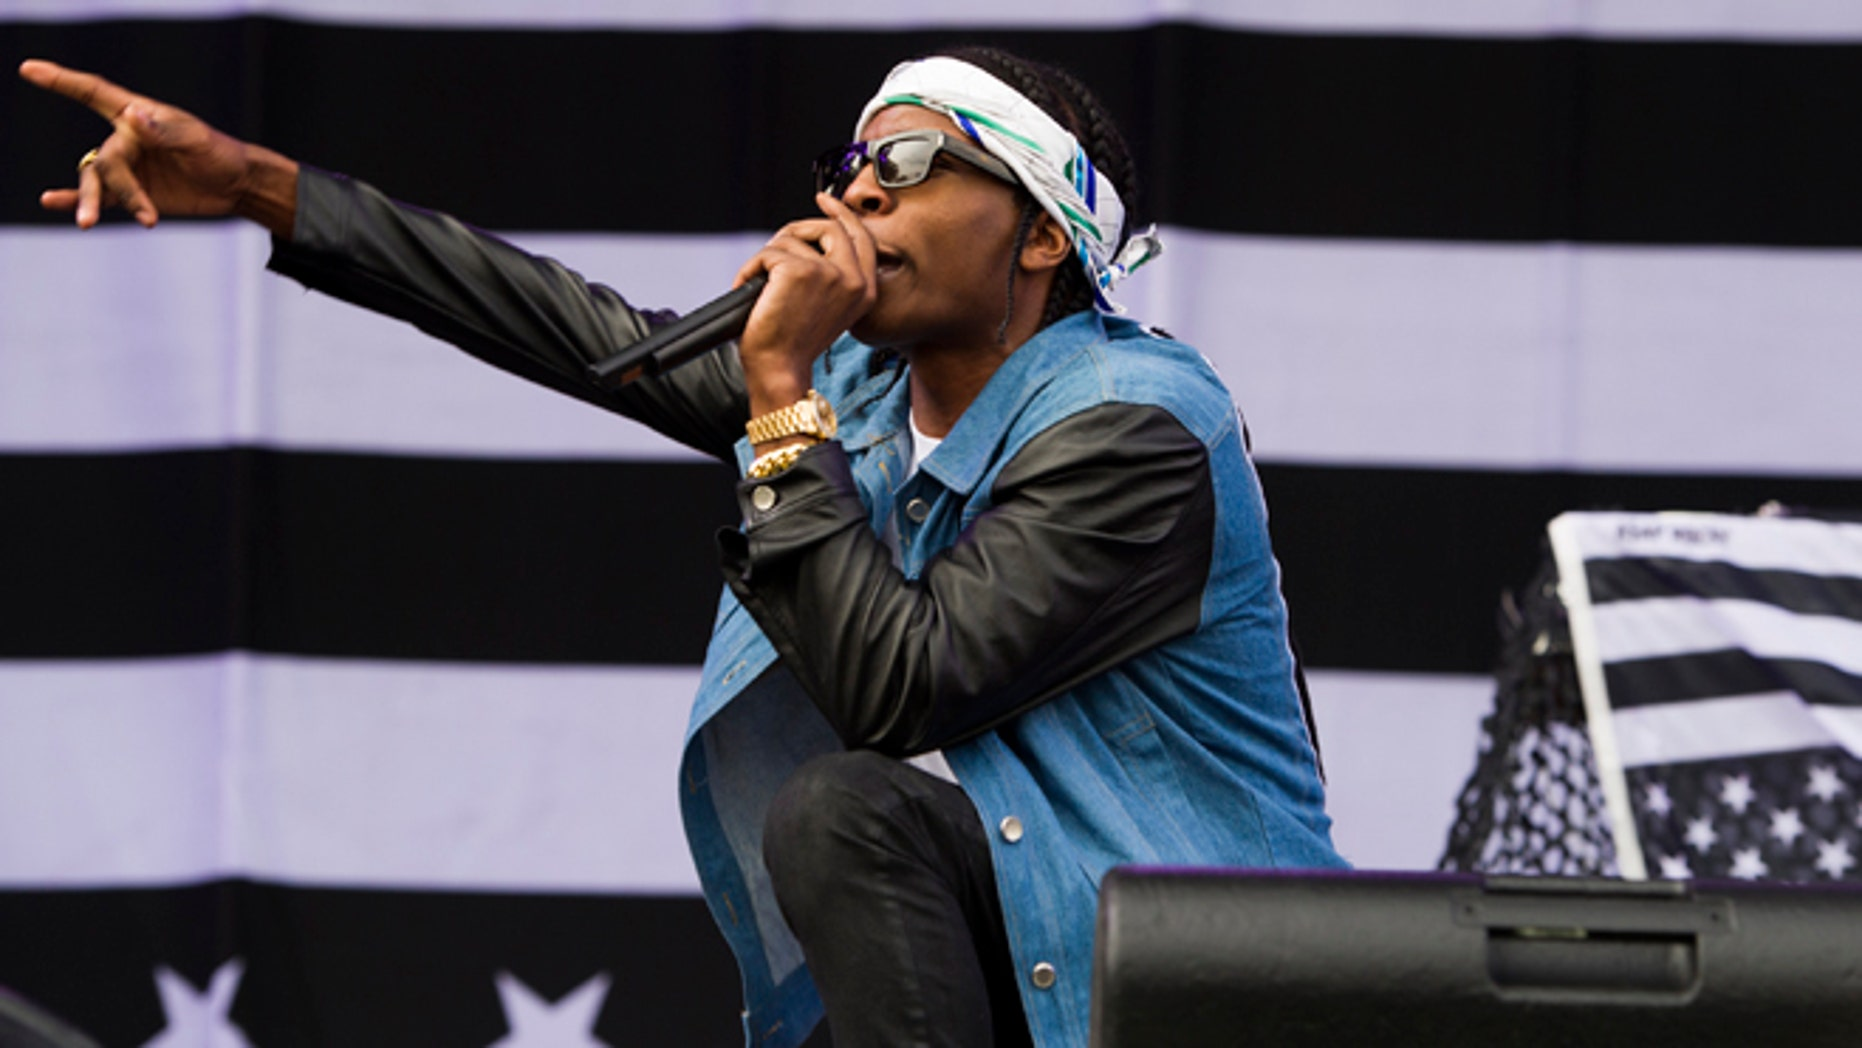 Aug. 31, 2013: ASAP Rocky performs on day one of the 2013 Budweiser Made in America Festival in Philadelphia, PA.